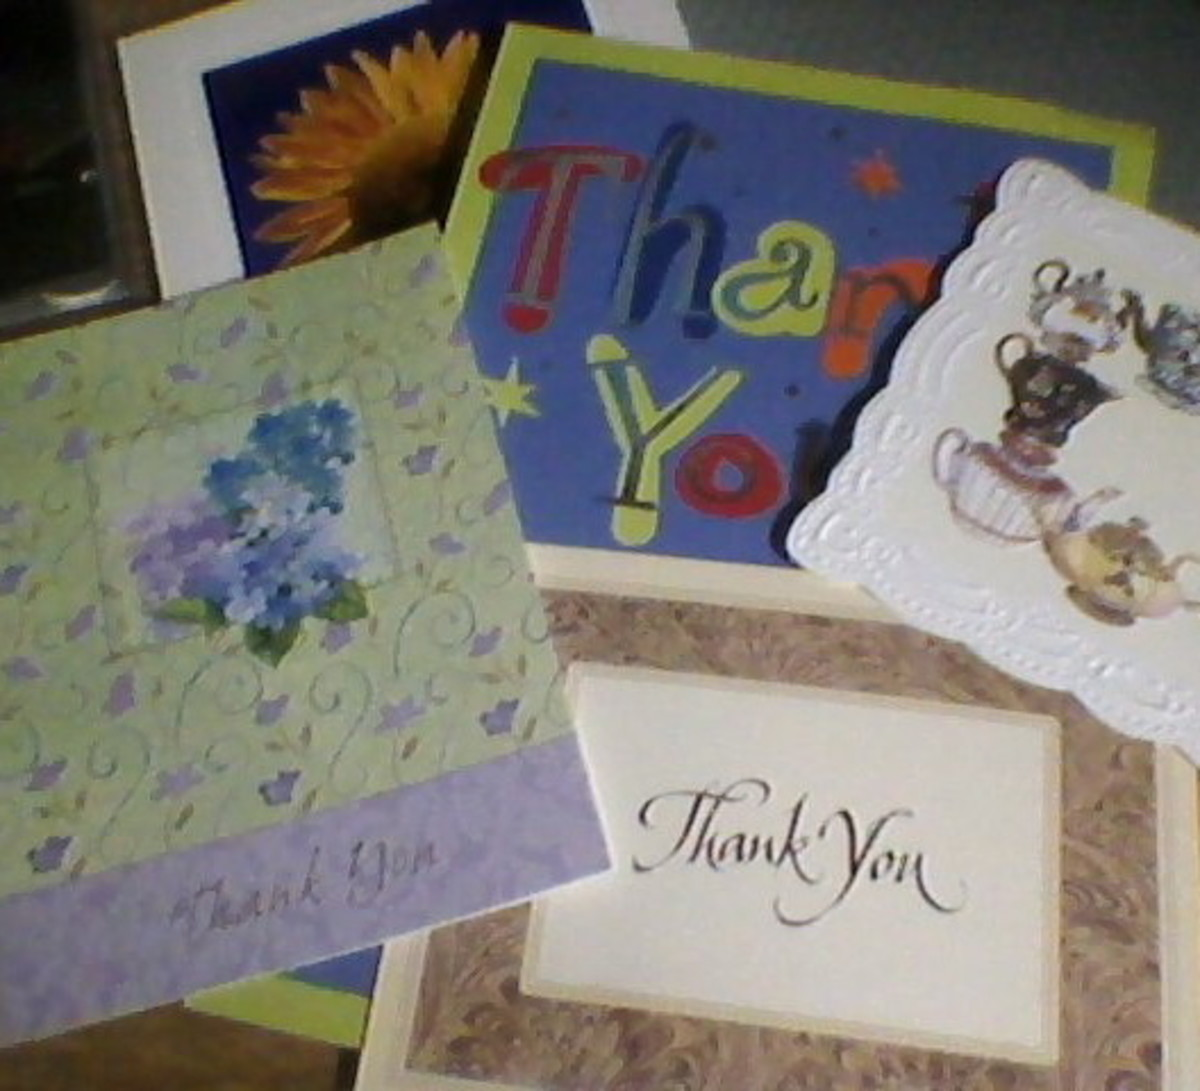 These are what are known as thank-you cards.